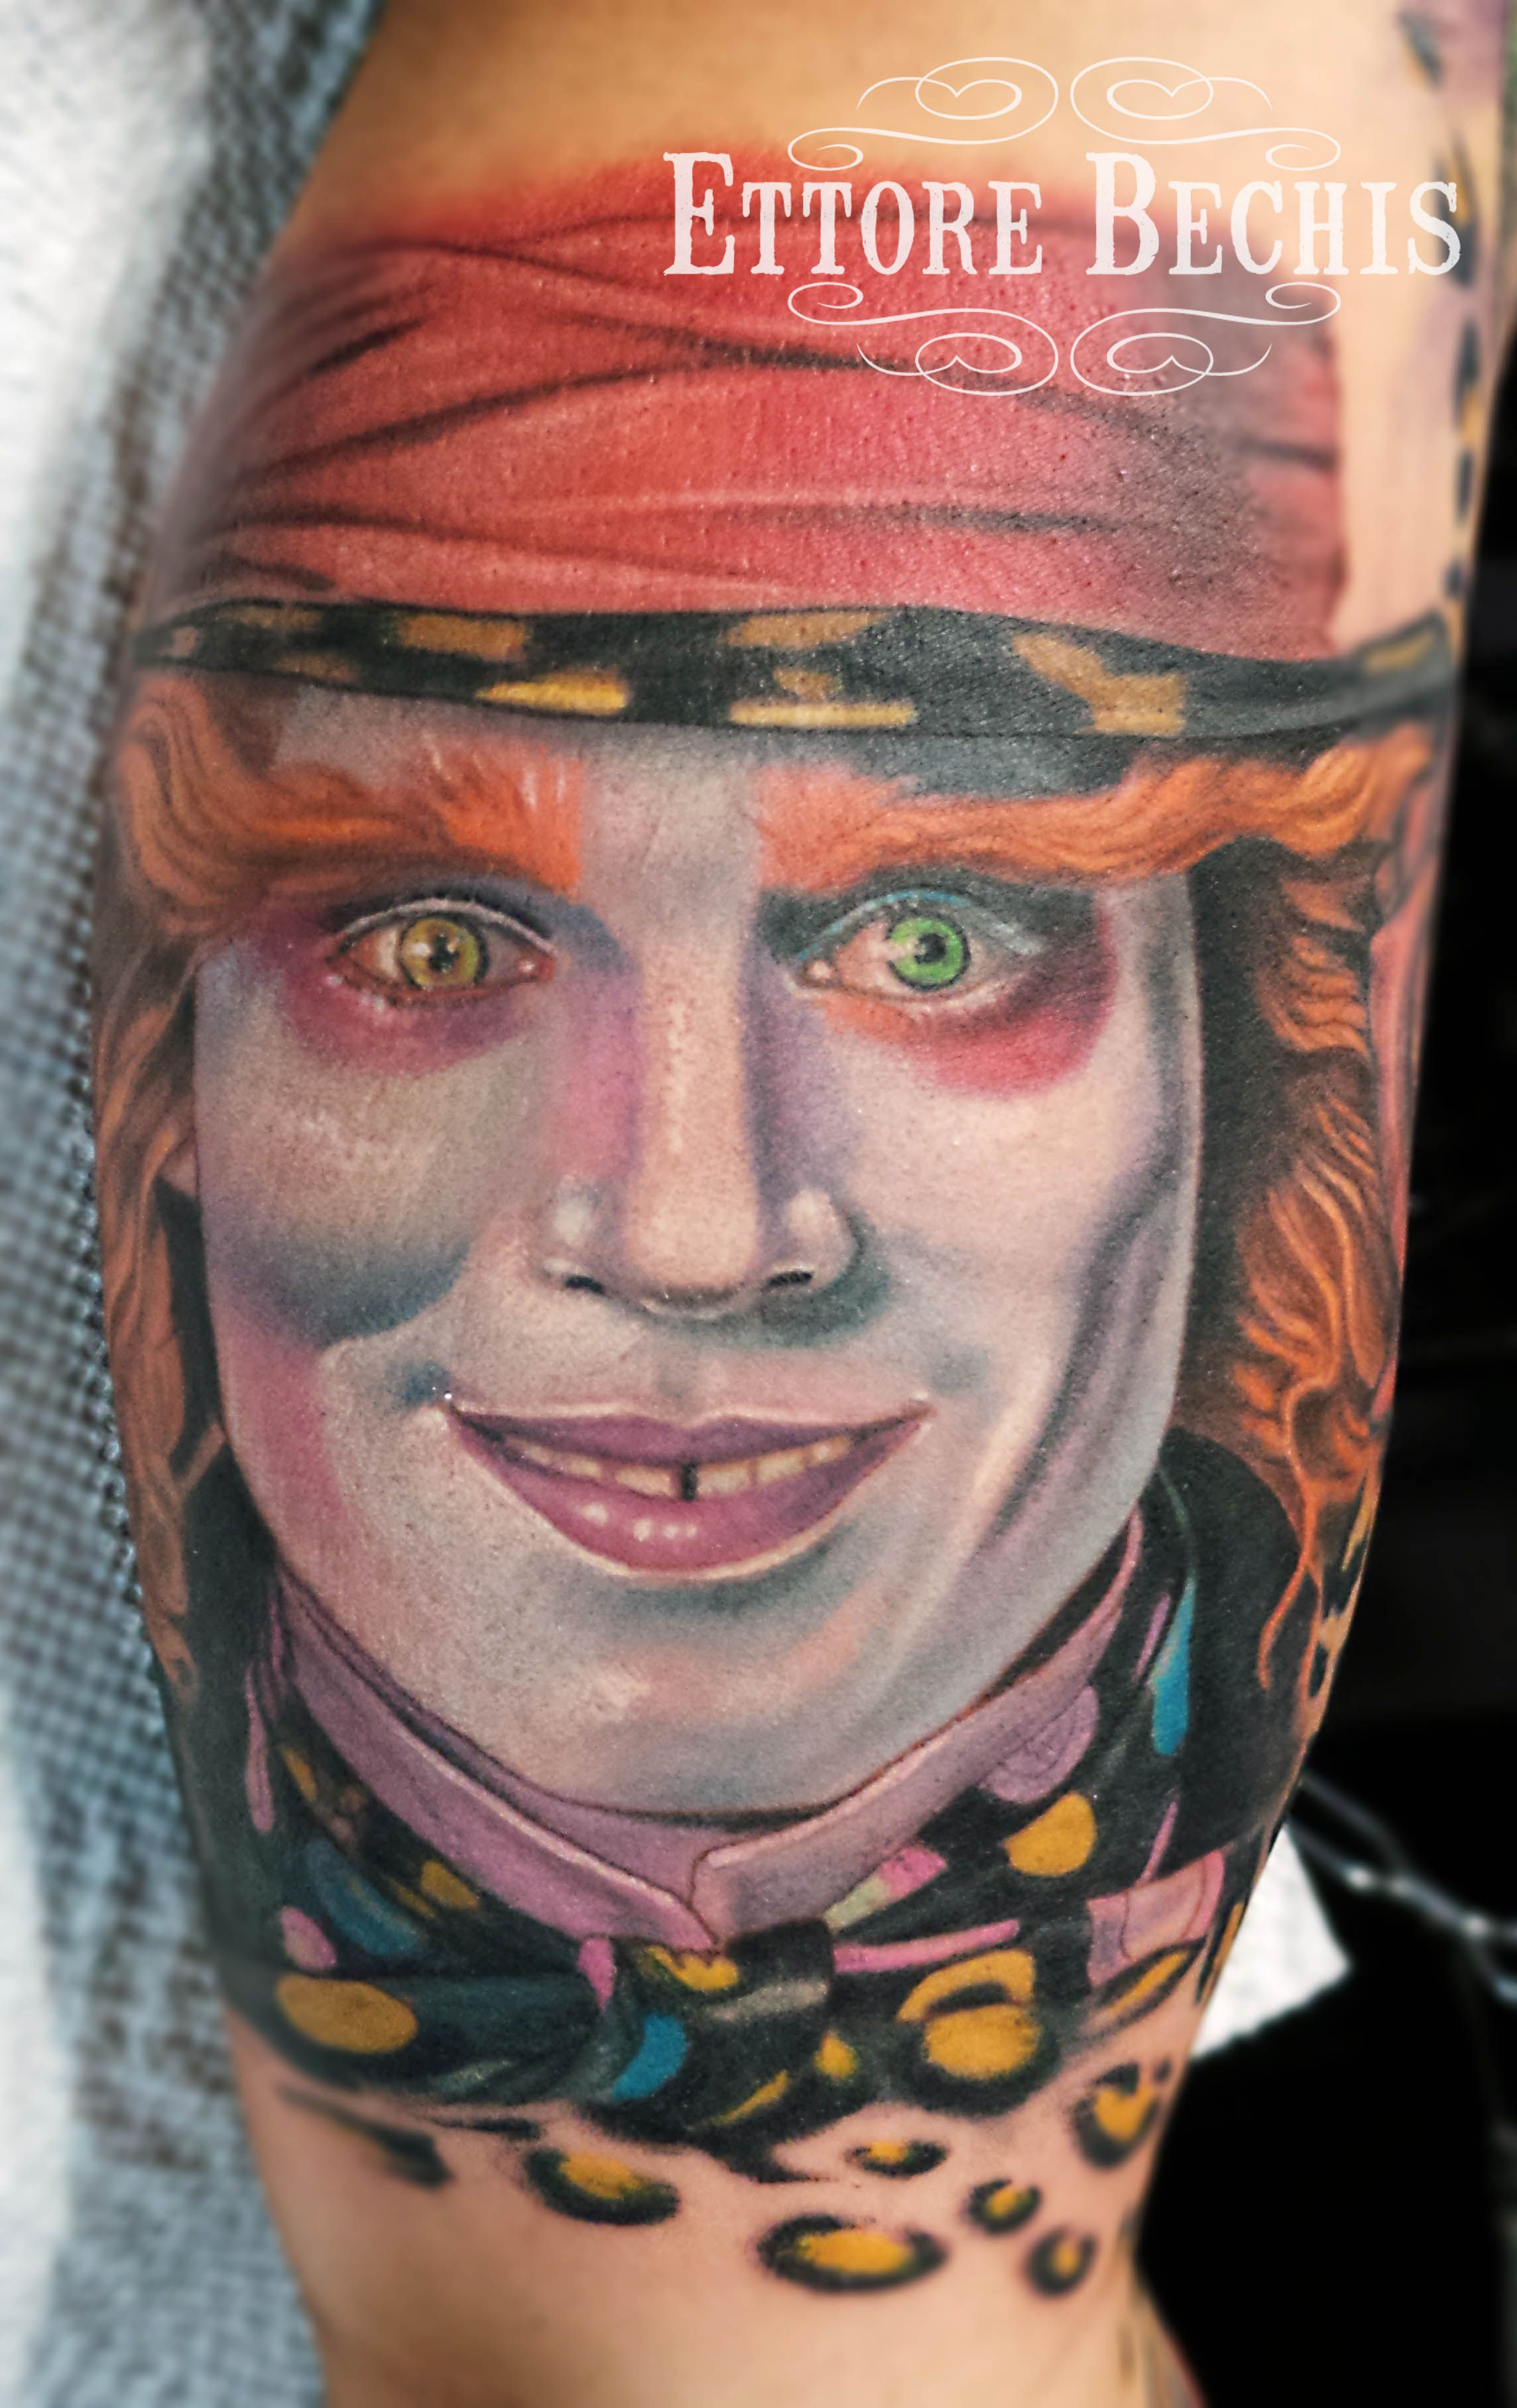 www.ettore-bechis.com Best Miami tattoo shop the mad hatter,top ...